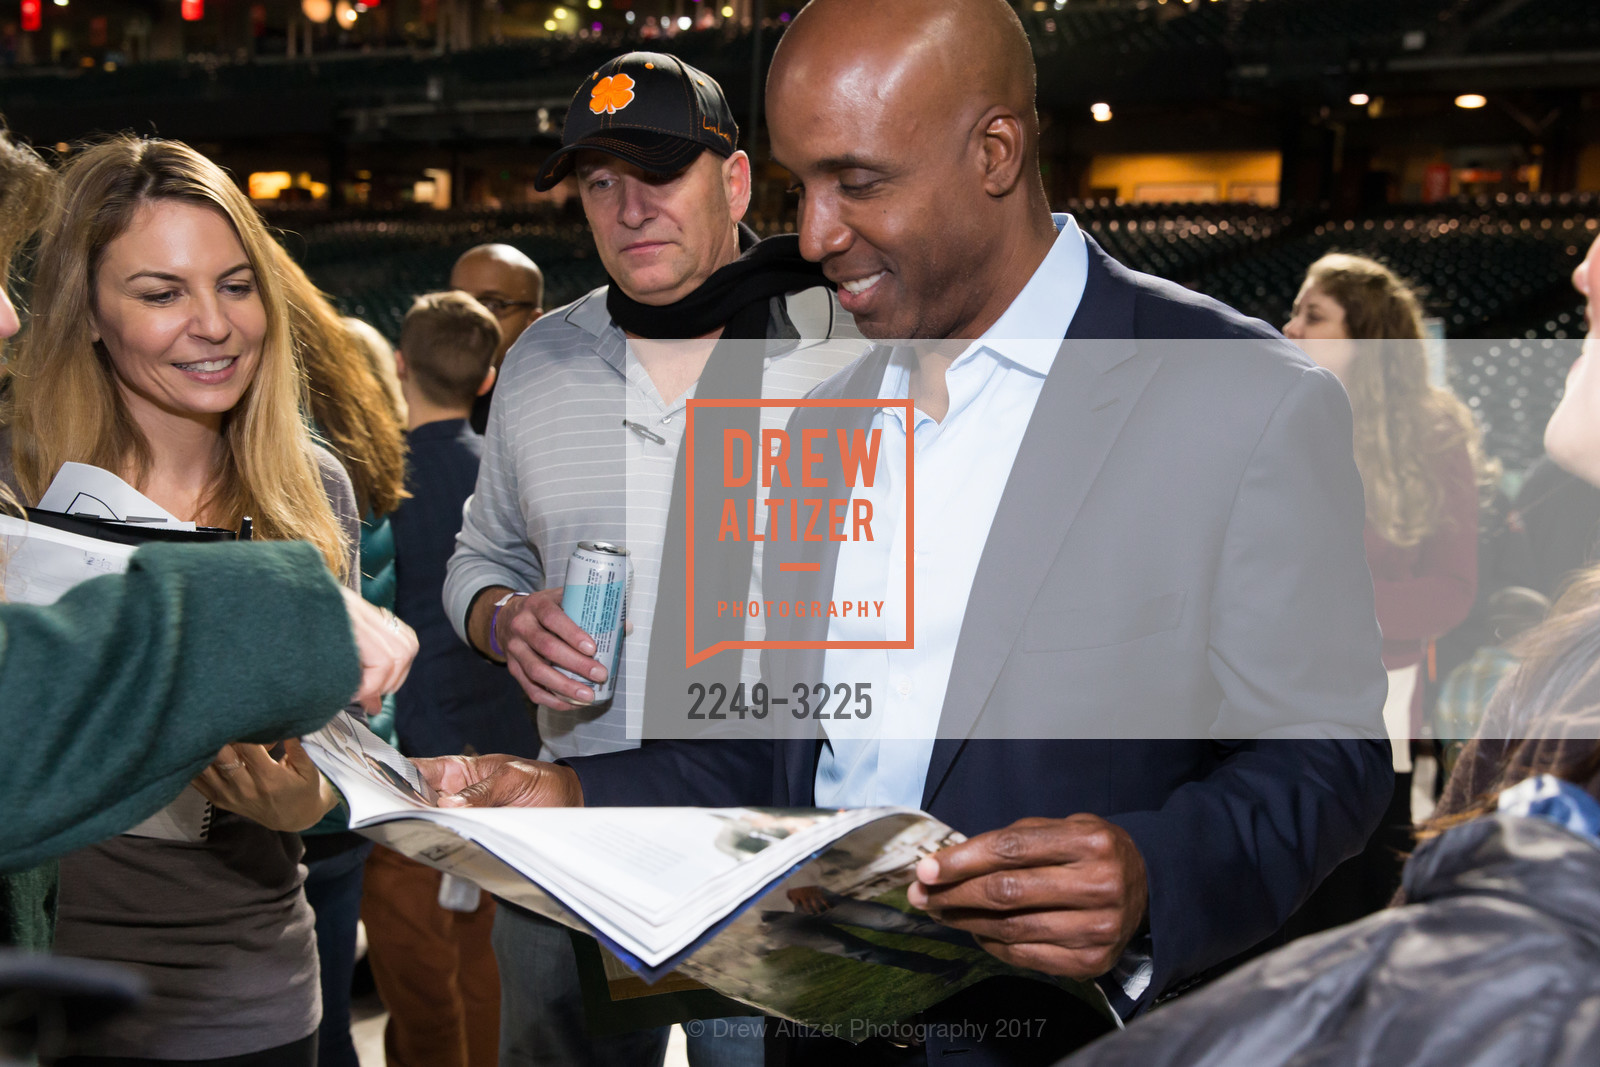 Barry Bonds, Photo #2249-3225